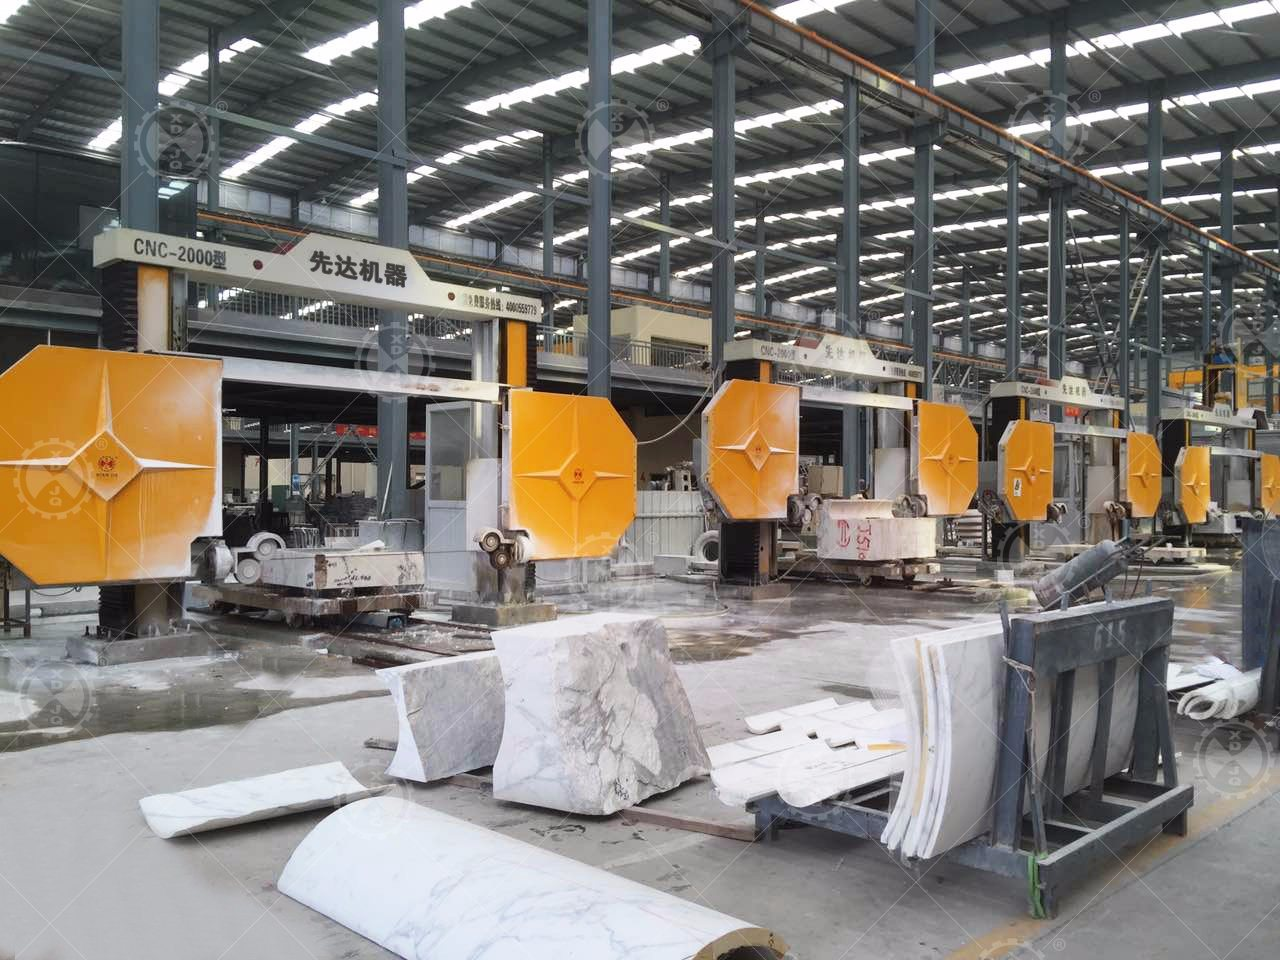 CNC - 2500 Stone Block Wire Saw Cutting Machine